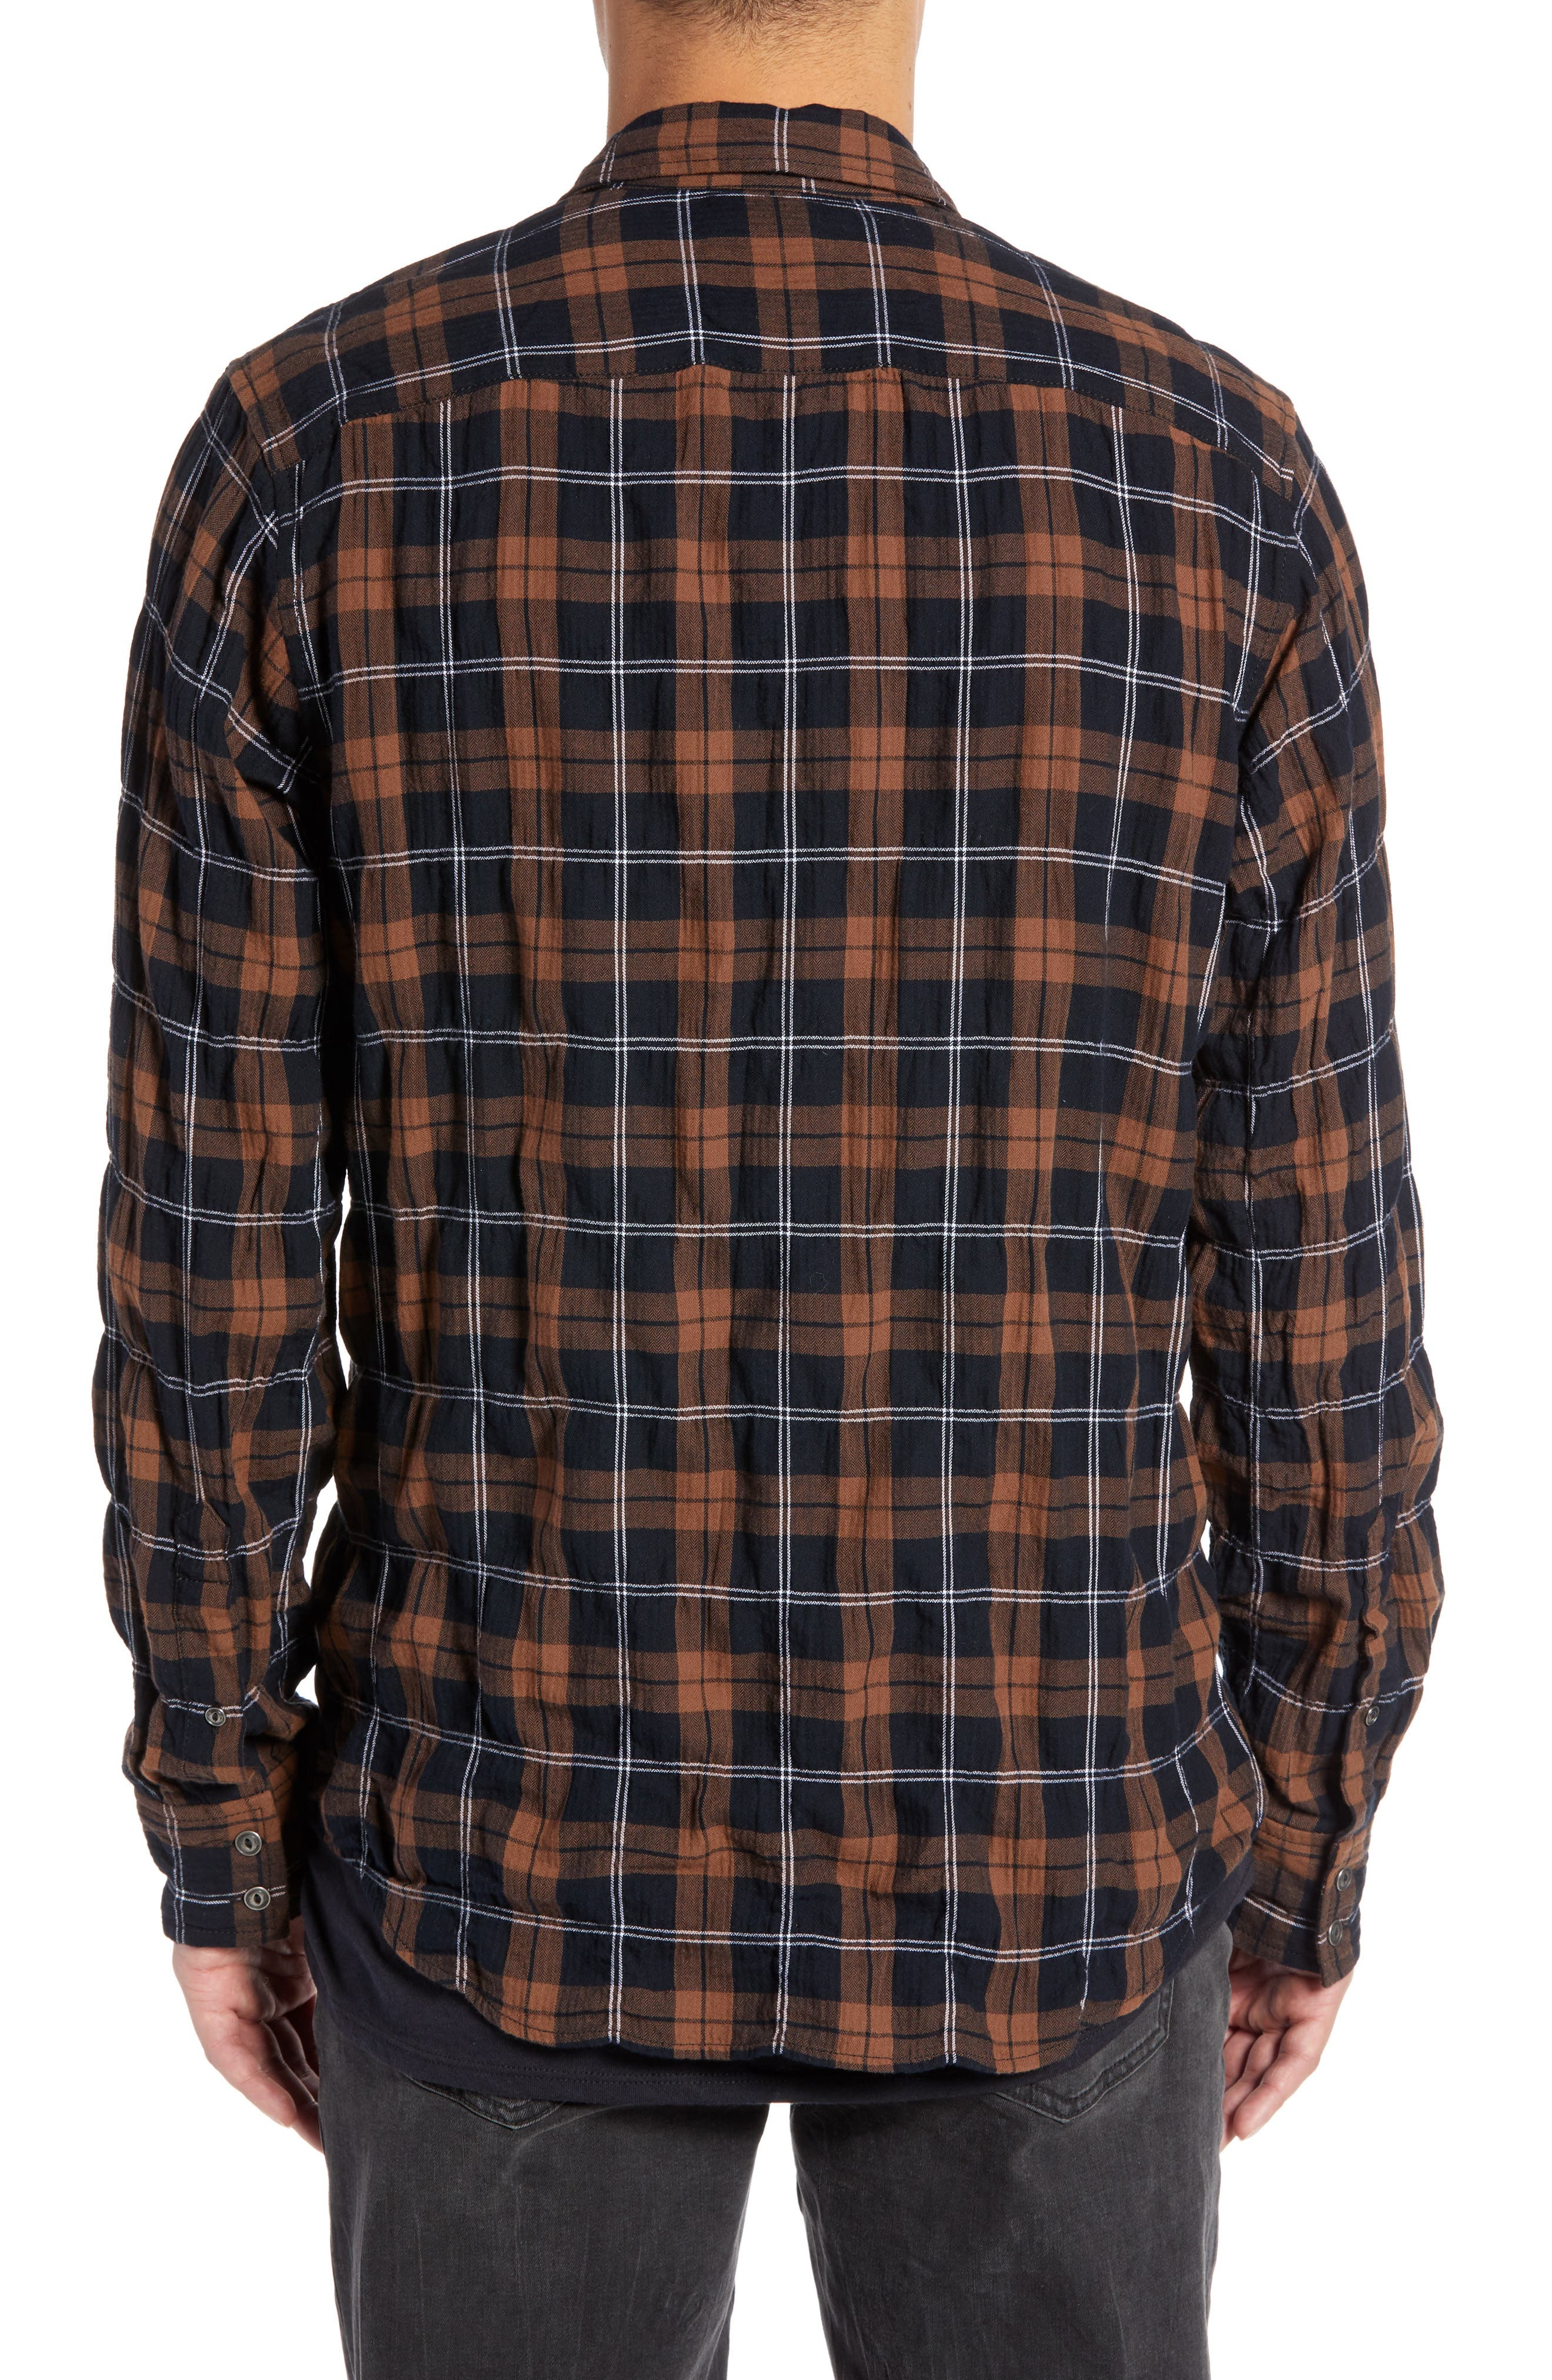 Regular Fit Plaid Sport Shirt,                             Alternate thumbnail 2, color,                             BLACK BROWN SMITH PLAID